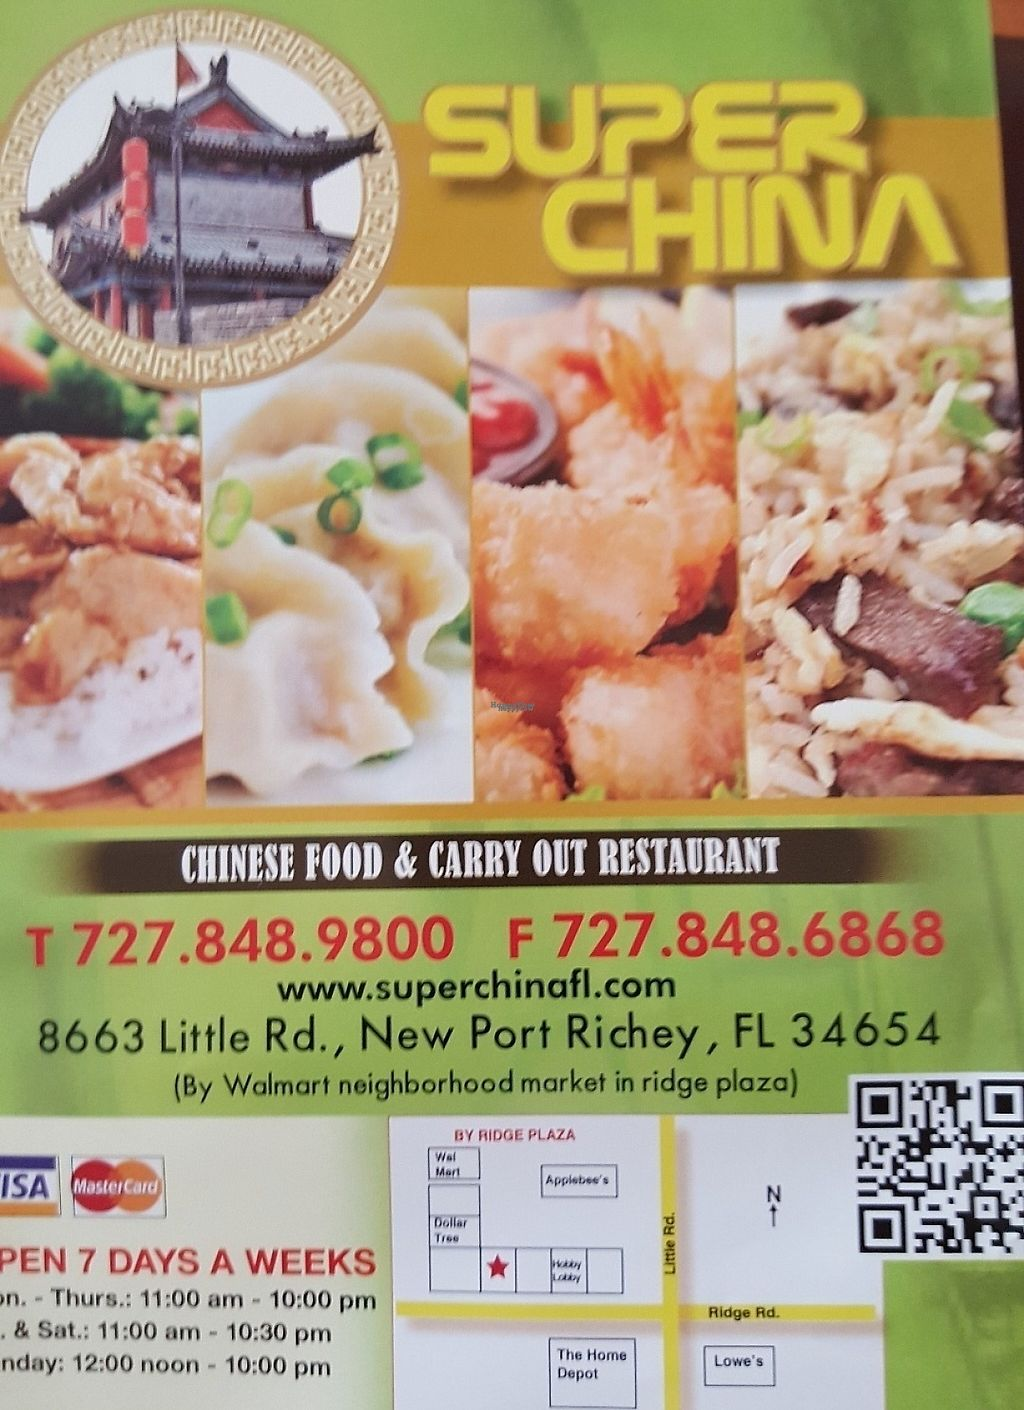 China In New Port Richey Menu Contact Info Place Is Ping Center With Hobby Lobby Hsn Outlet